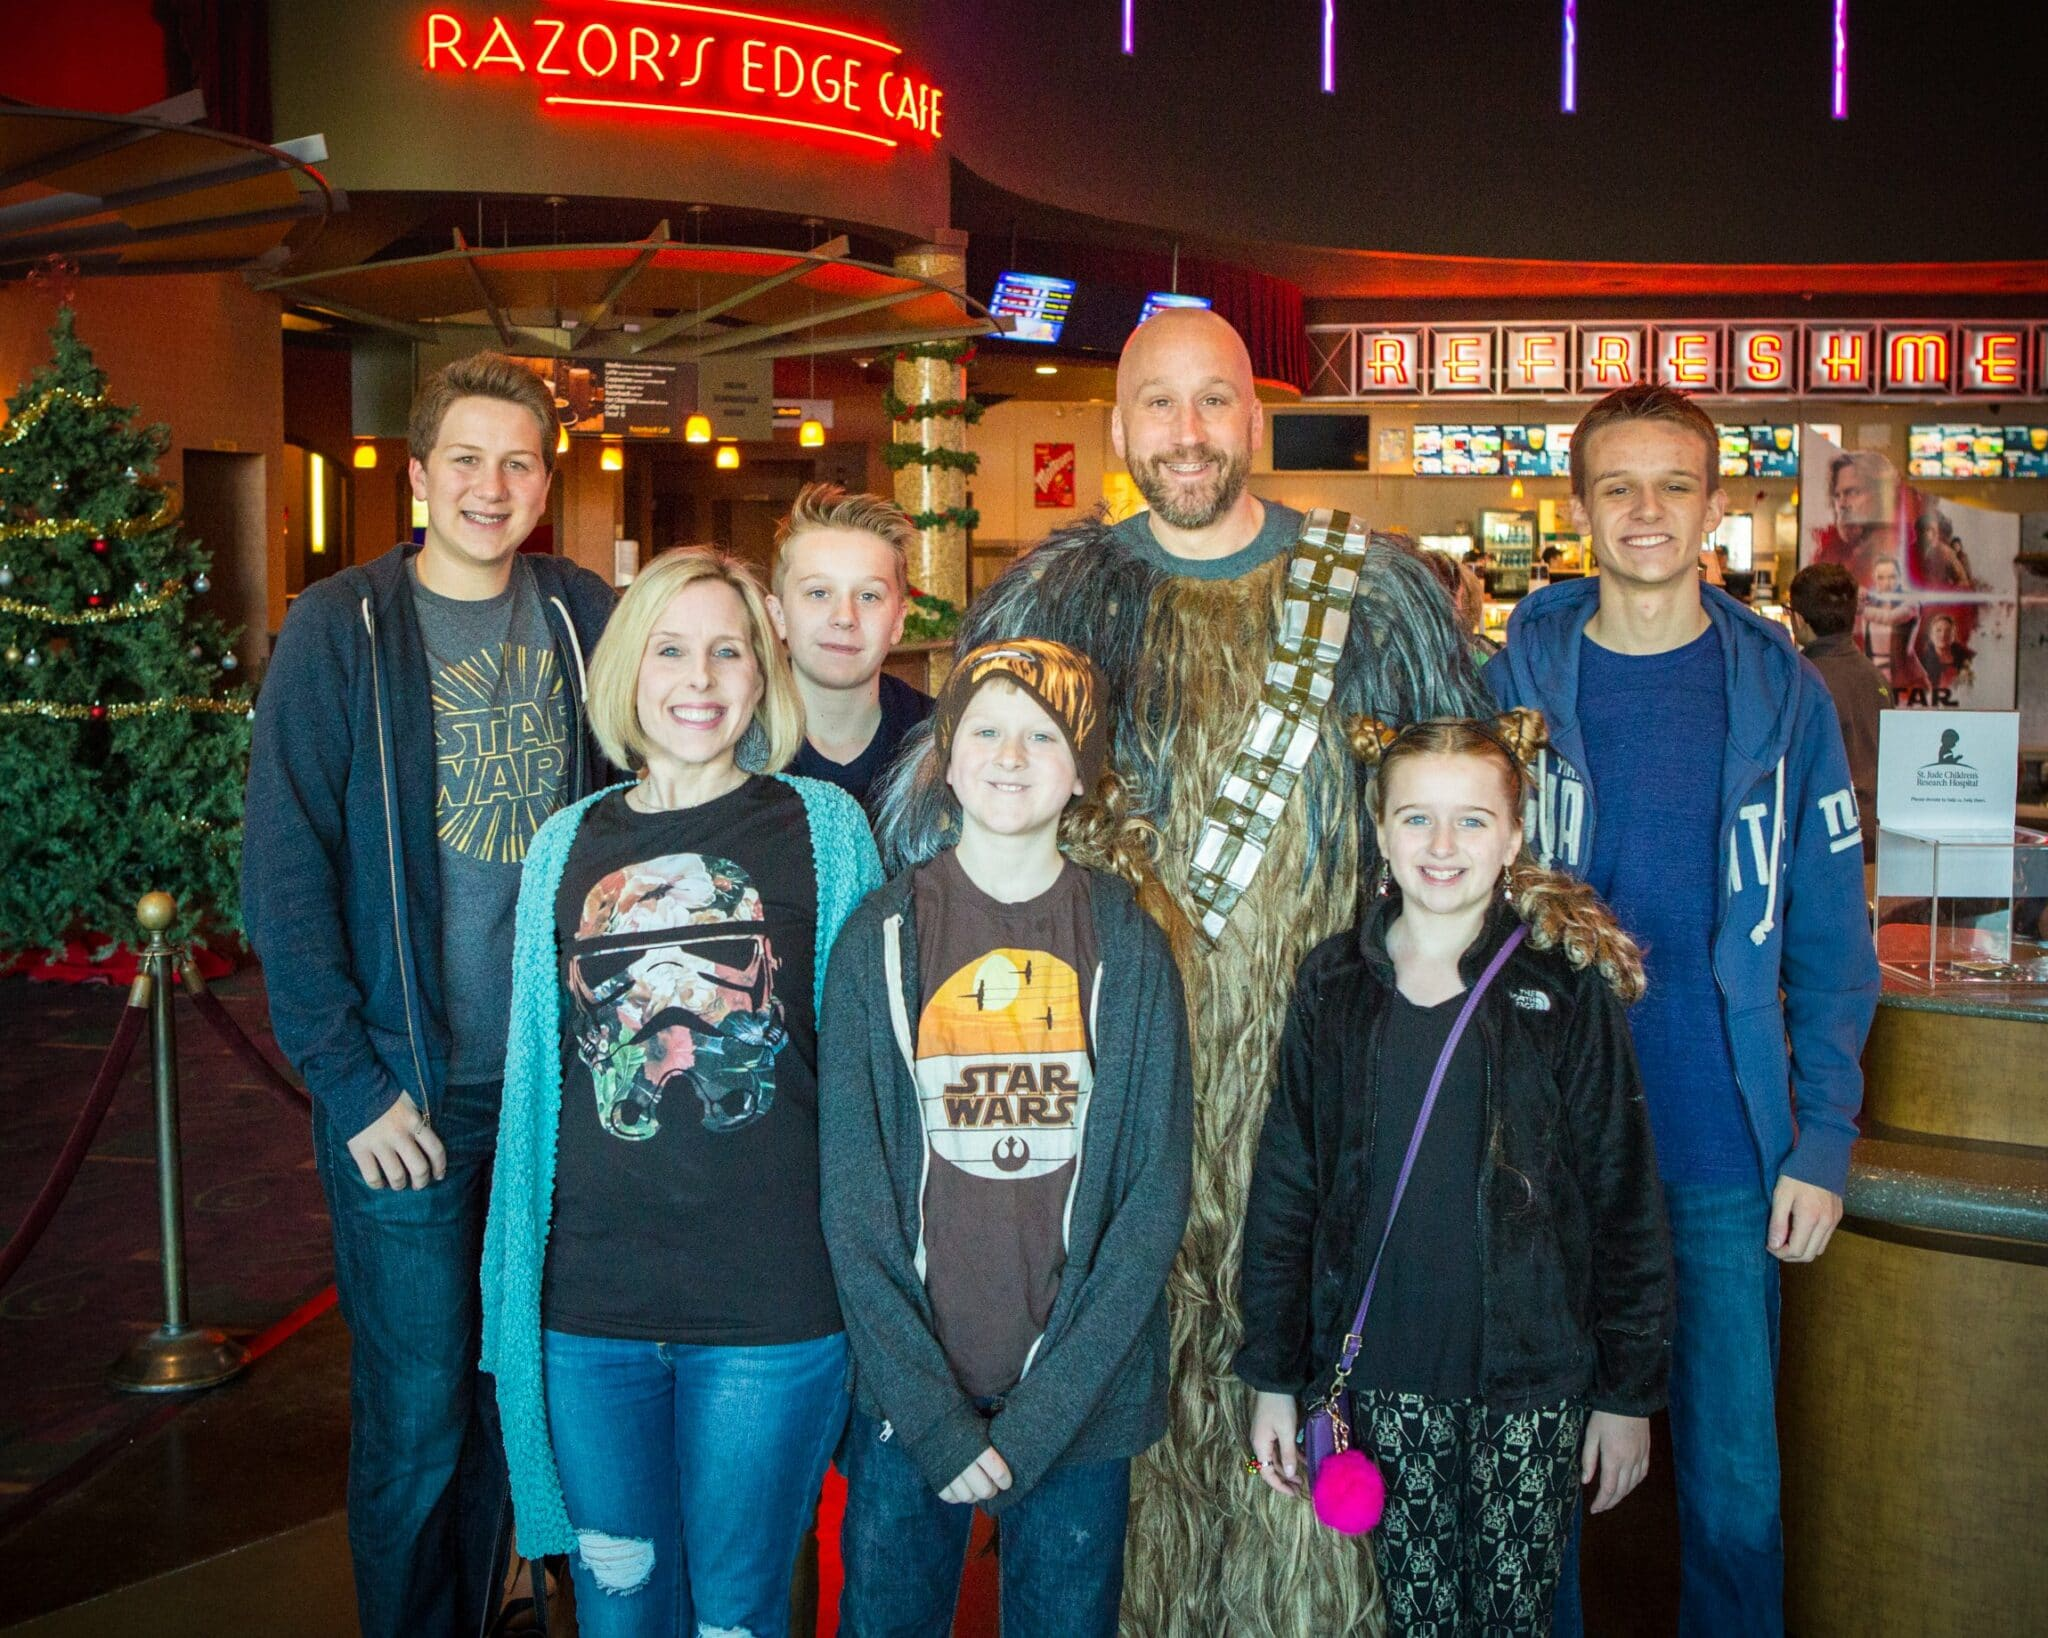 Northwest-Orthodontics-Star-Wars-2018-Star-Wars-Movie-Day-Fayetteville-Arkansas-13-of-38